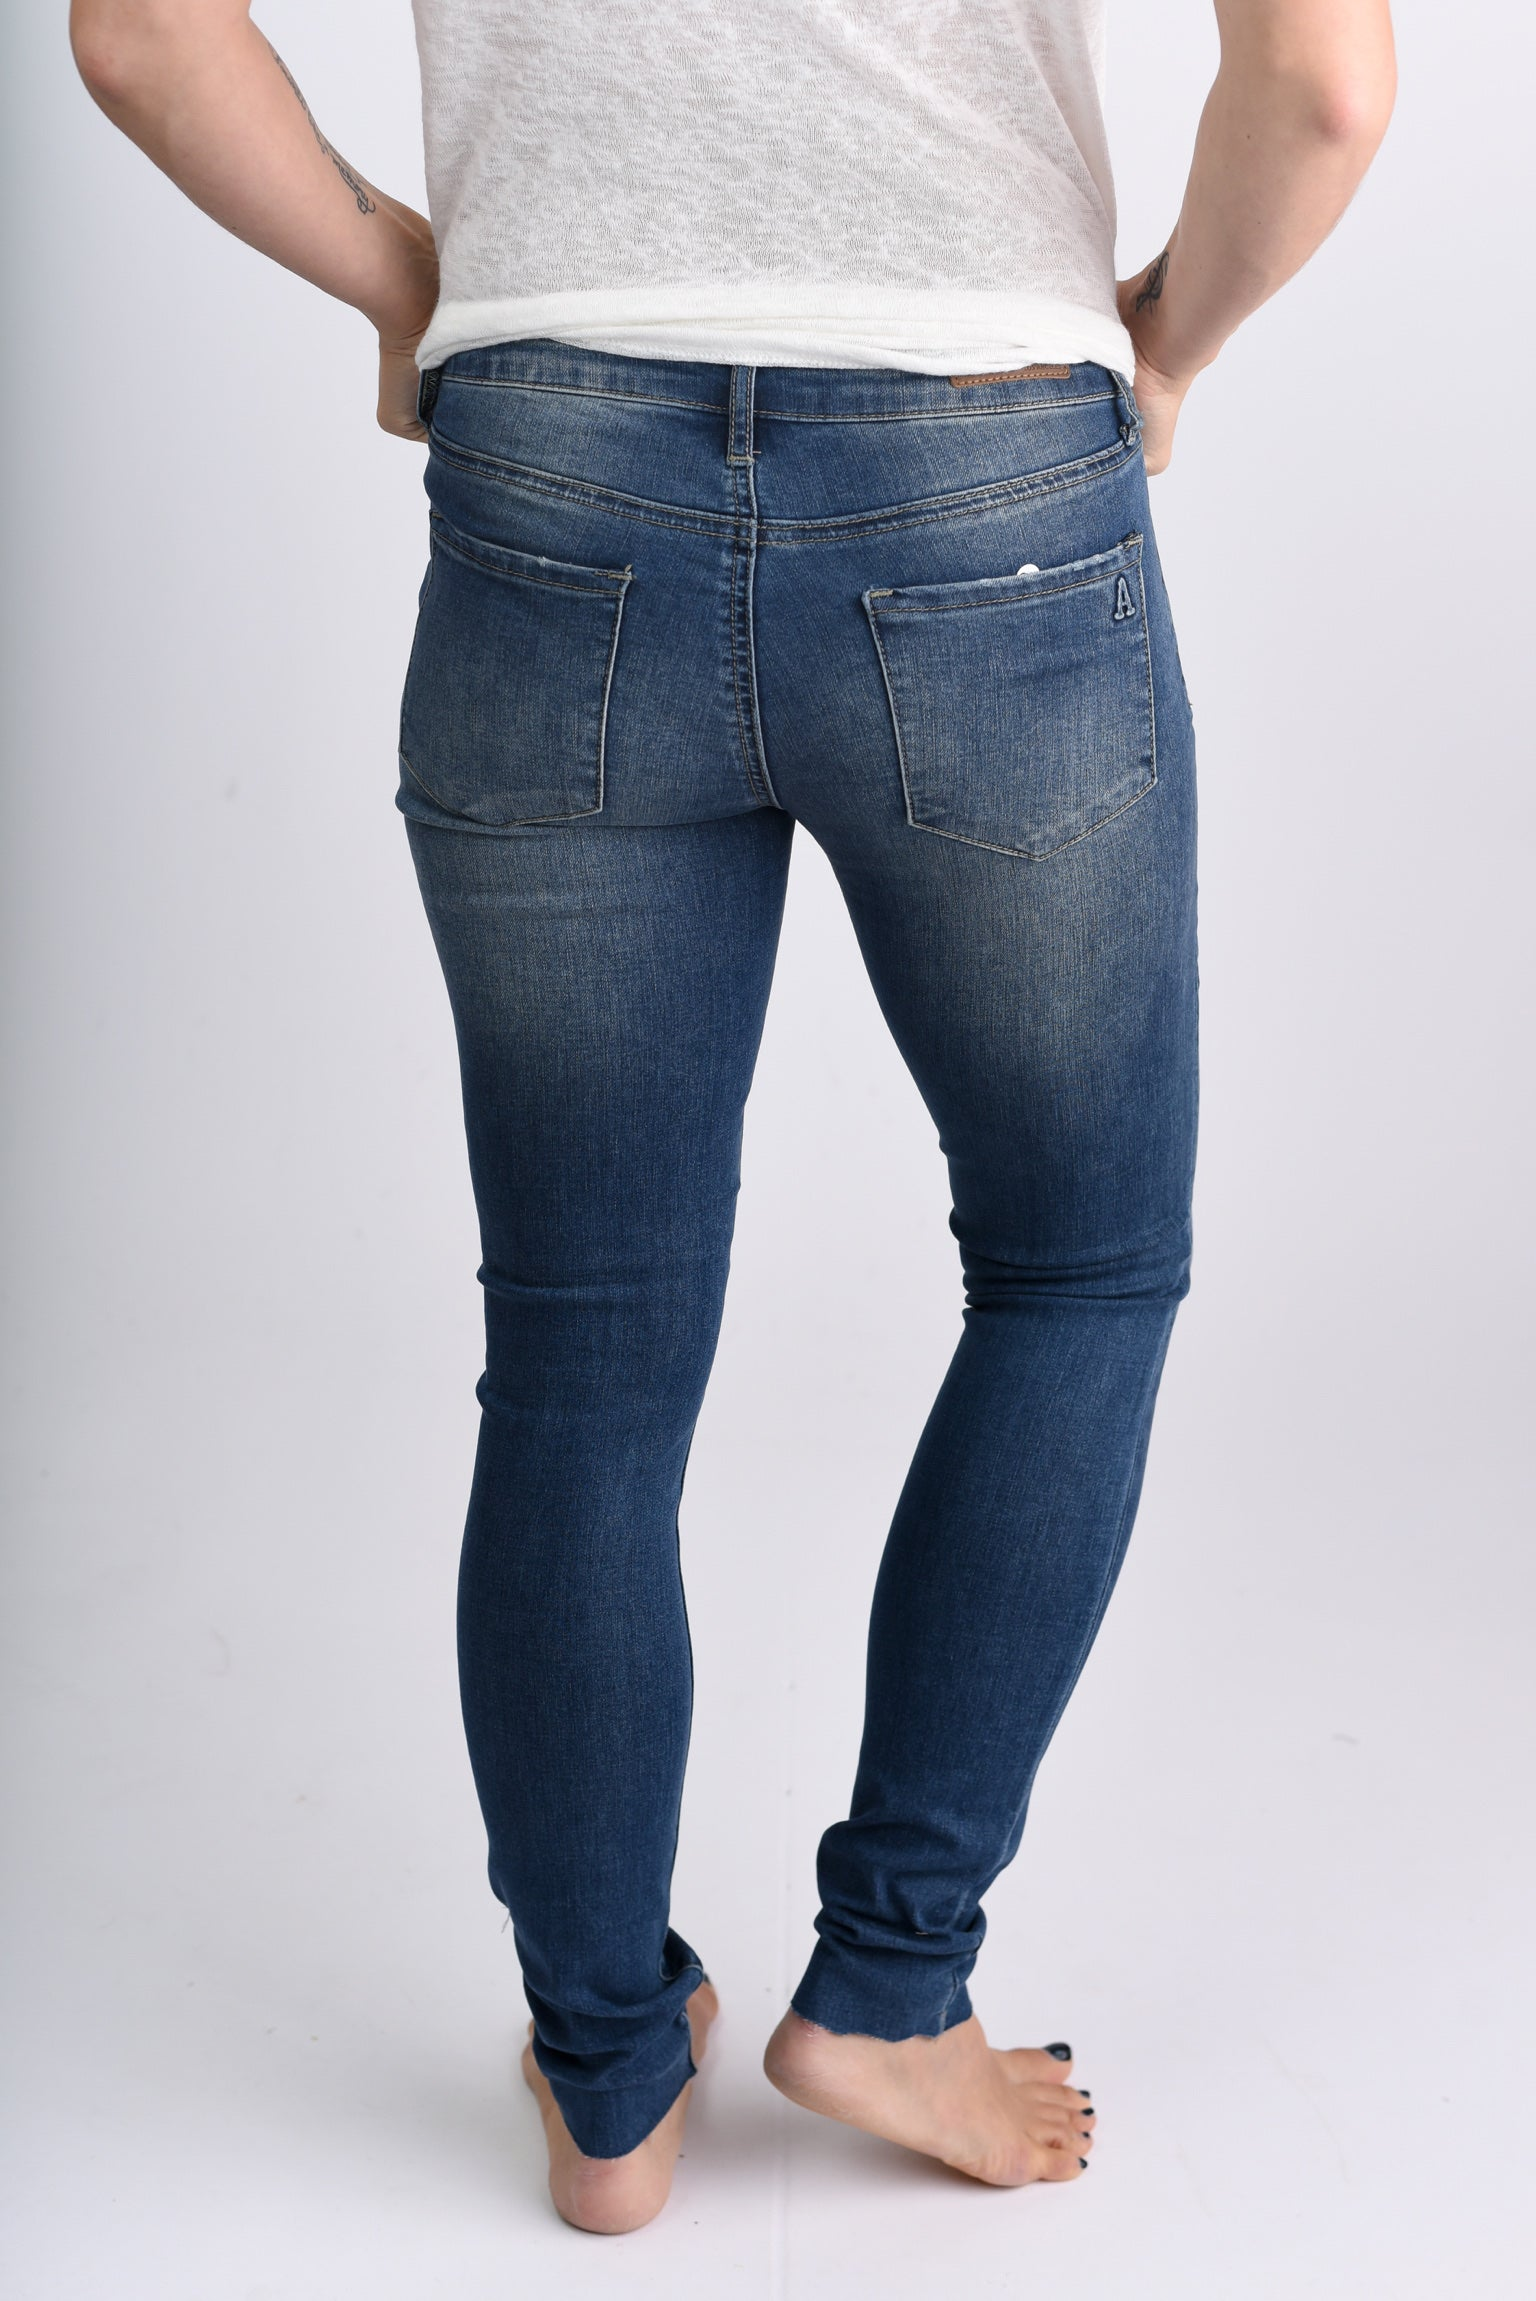 My Only Exception Distressed Medium Wash Skinny Jeans